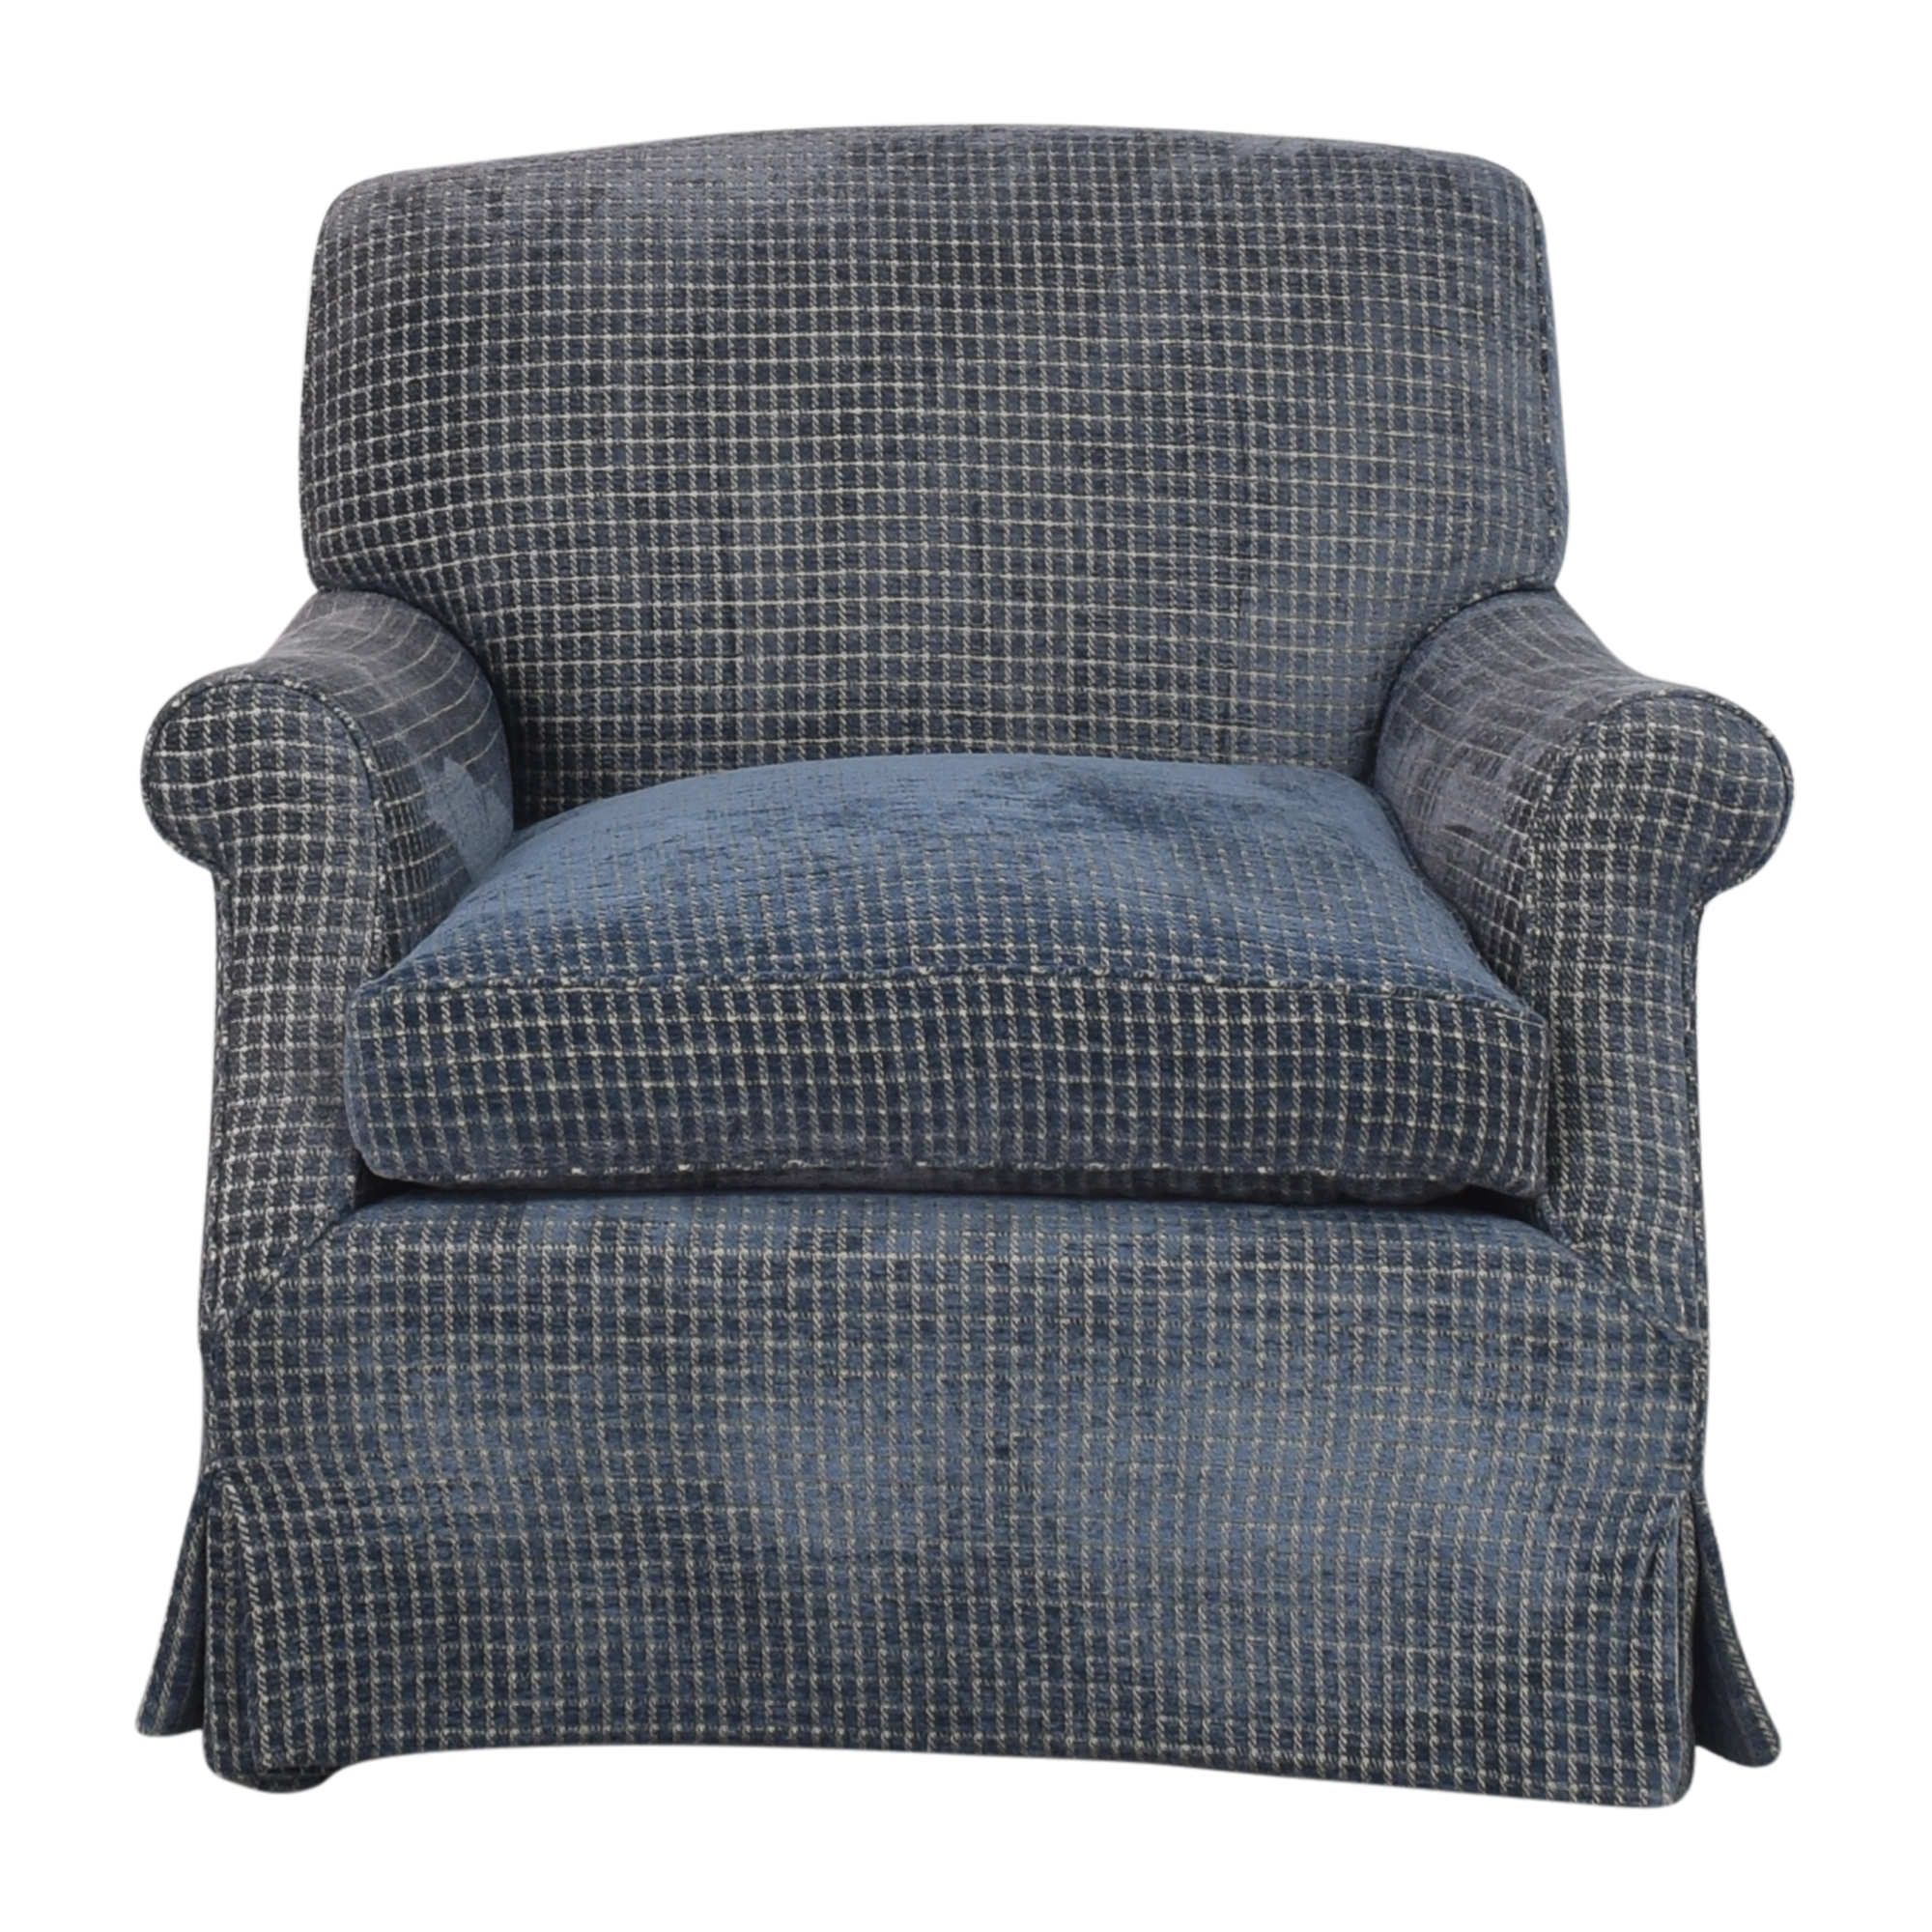 Skirted Accent Chair with Ottoman / Accent Chairs